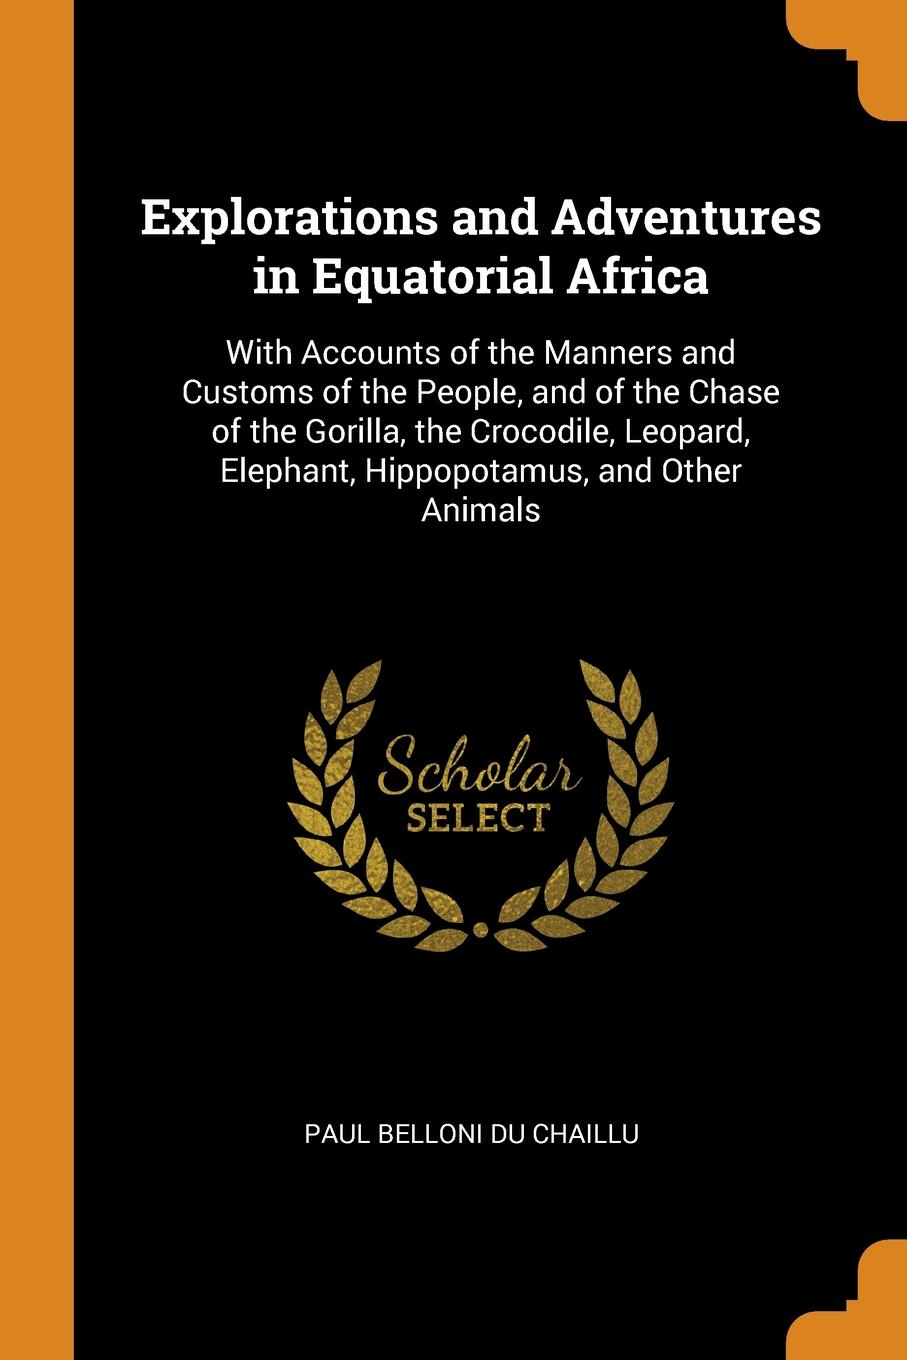 Paul Belloni Du Chaillu Explorations and Adventures in Equatorial Africa. With Accounts of the Manners and Customs of the People, and of the Chase of the Gorilla, the Crocodile, Leopard, Elephant, Hippopotamus, and Other Animals du chaillu paul belloni the country of the dwarfs